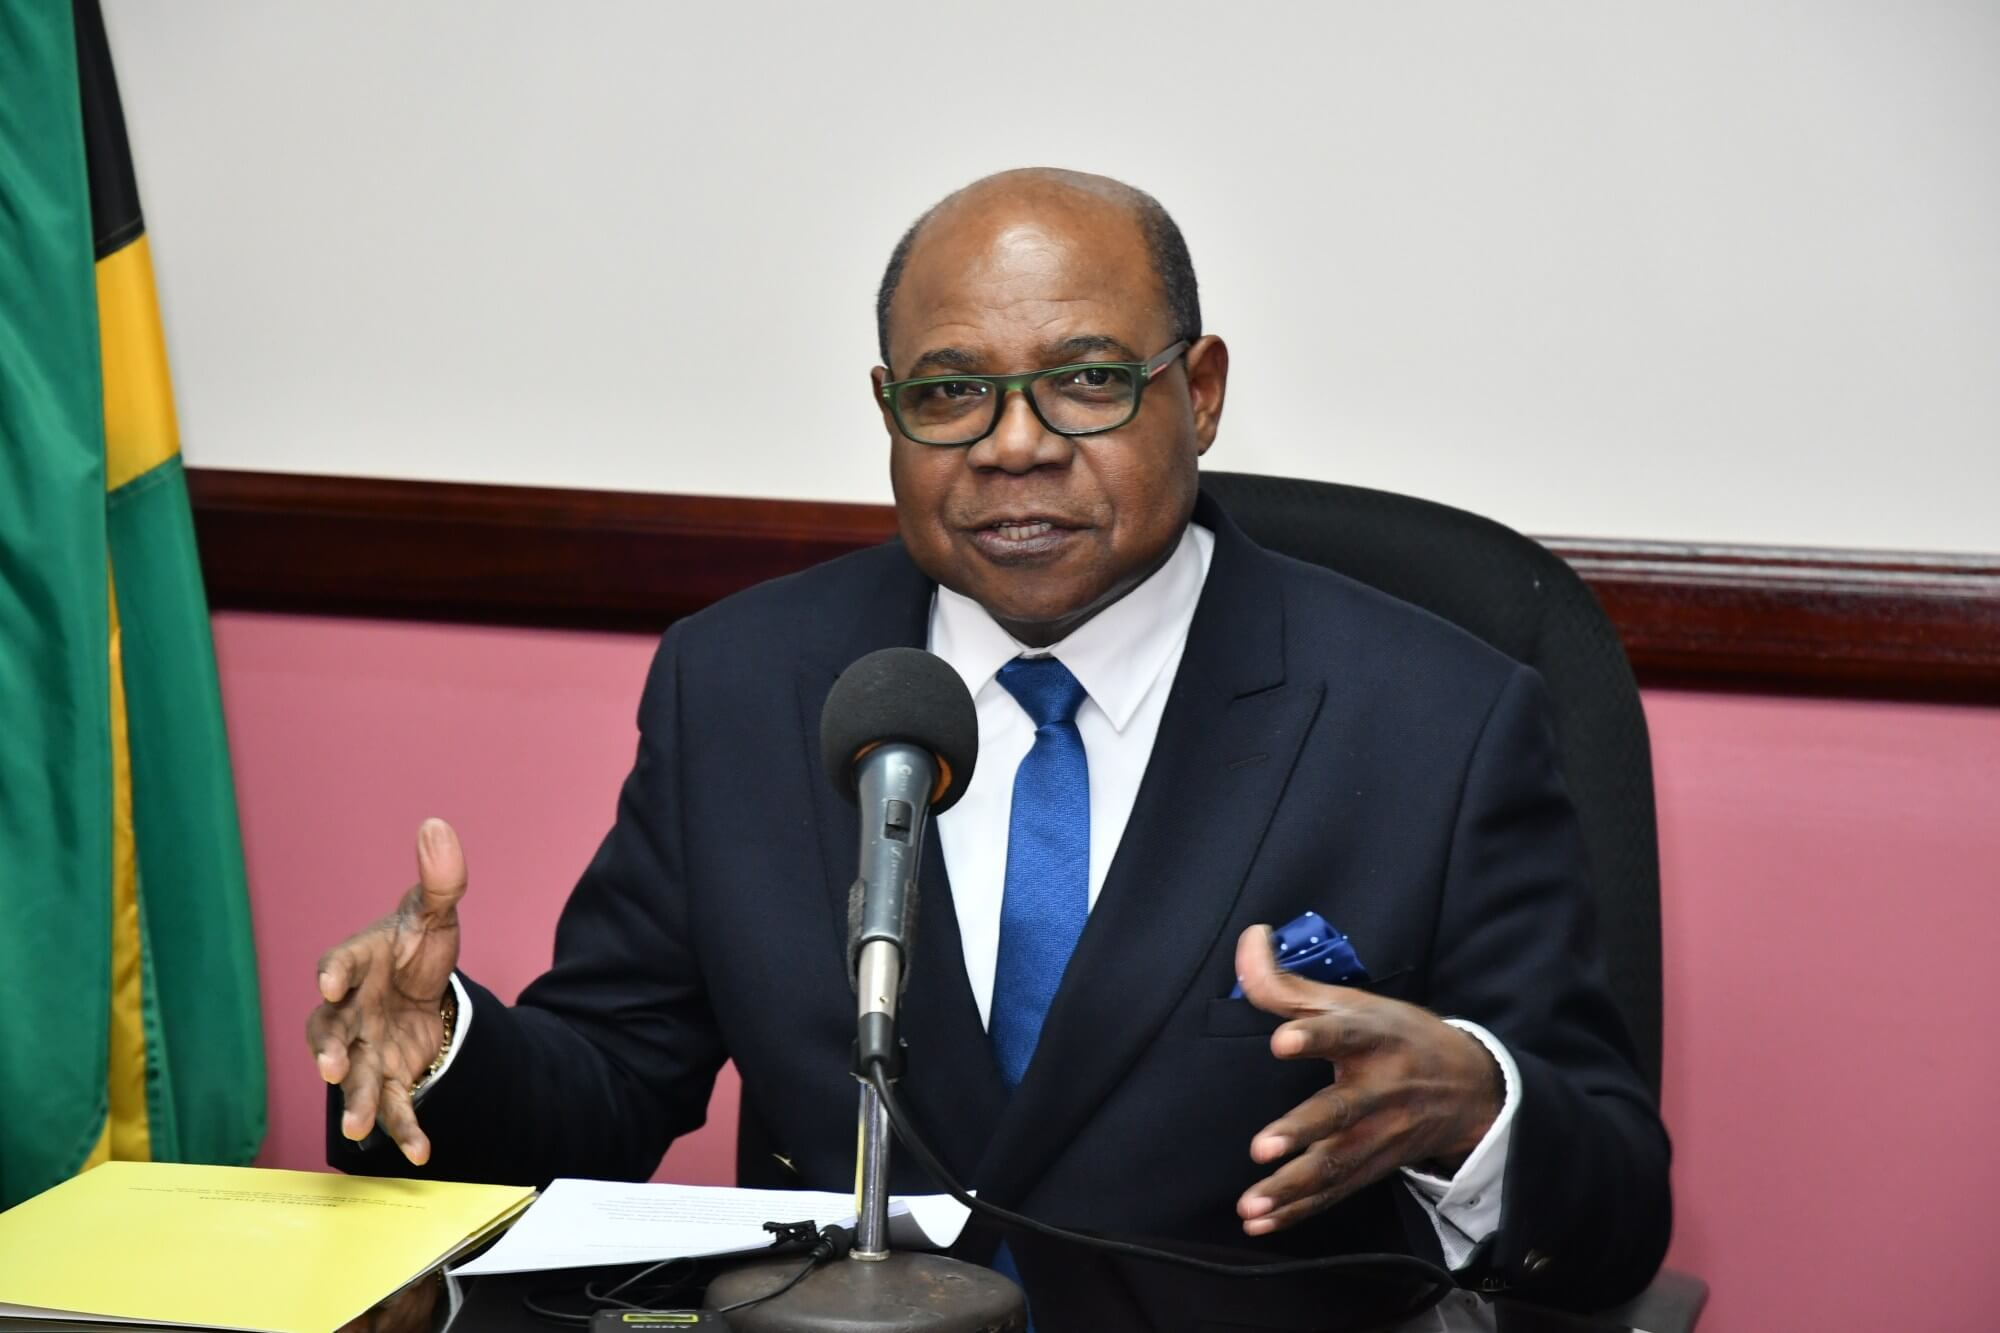 Jamaica to host first ever global Tourism Innovation Resilience and Crisis Management Summit in 2020